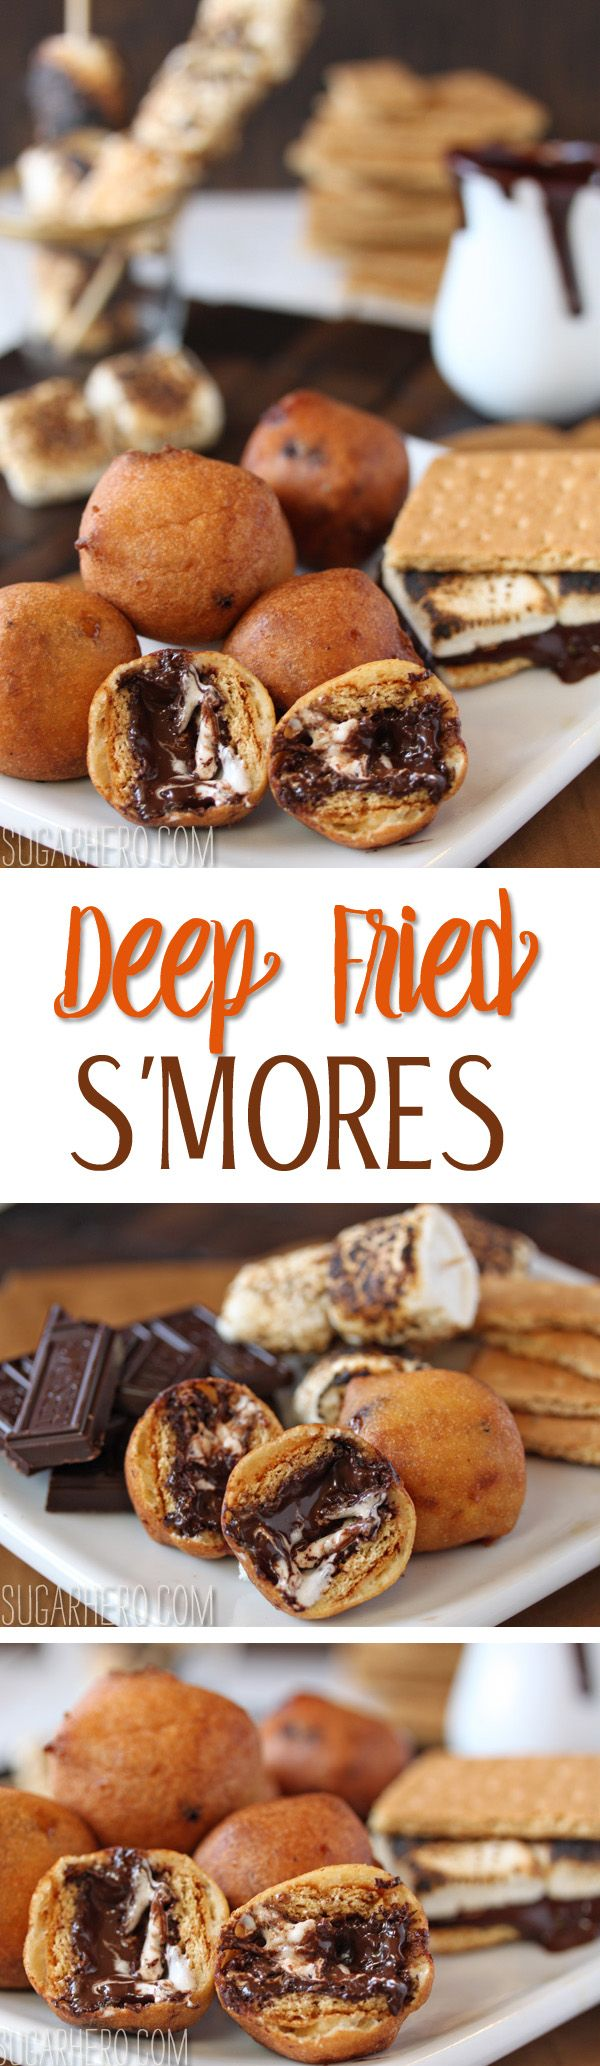 Best 25+ Melted chocolate ideas on Pinterest | Nutella recipes ...